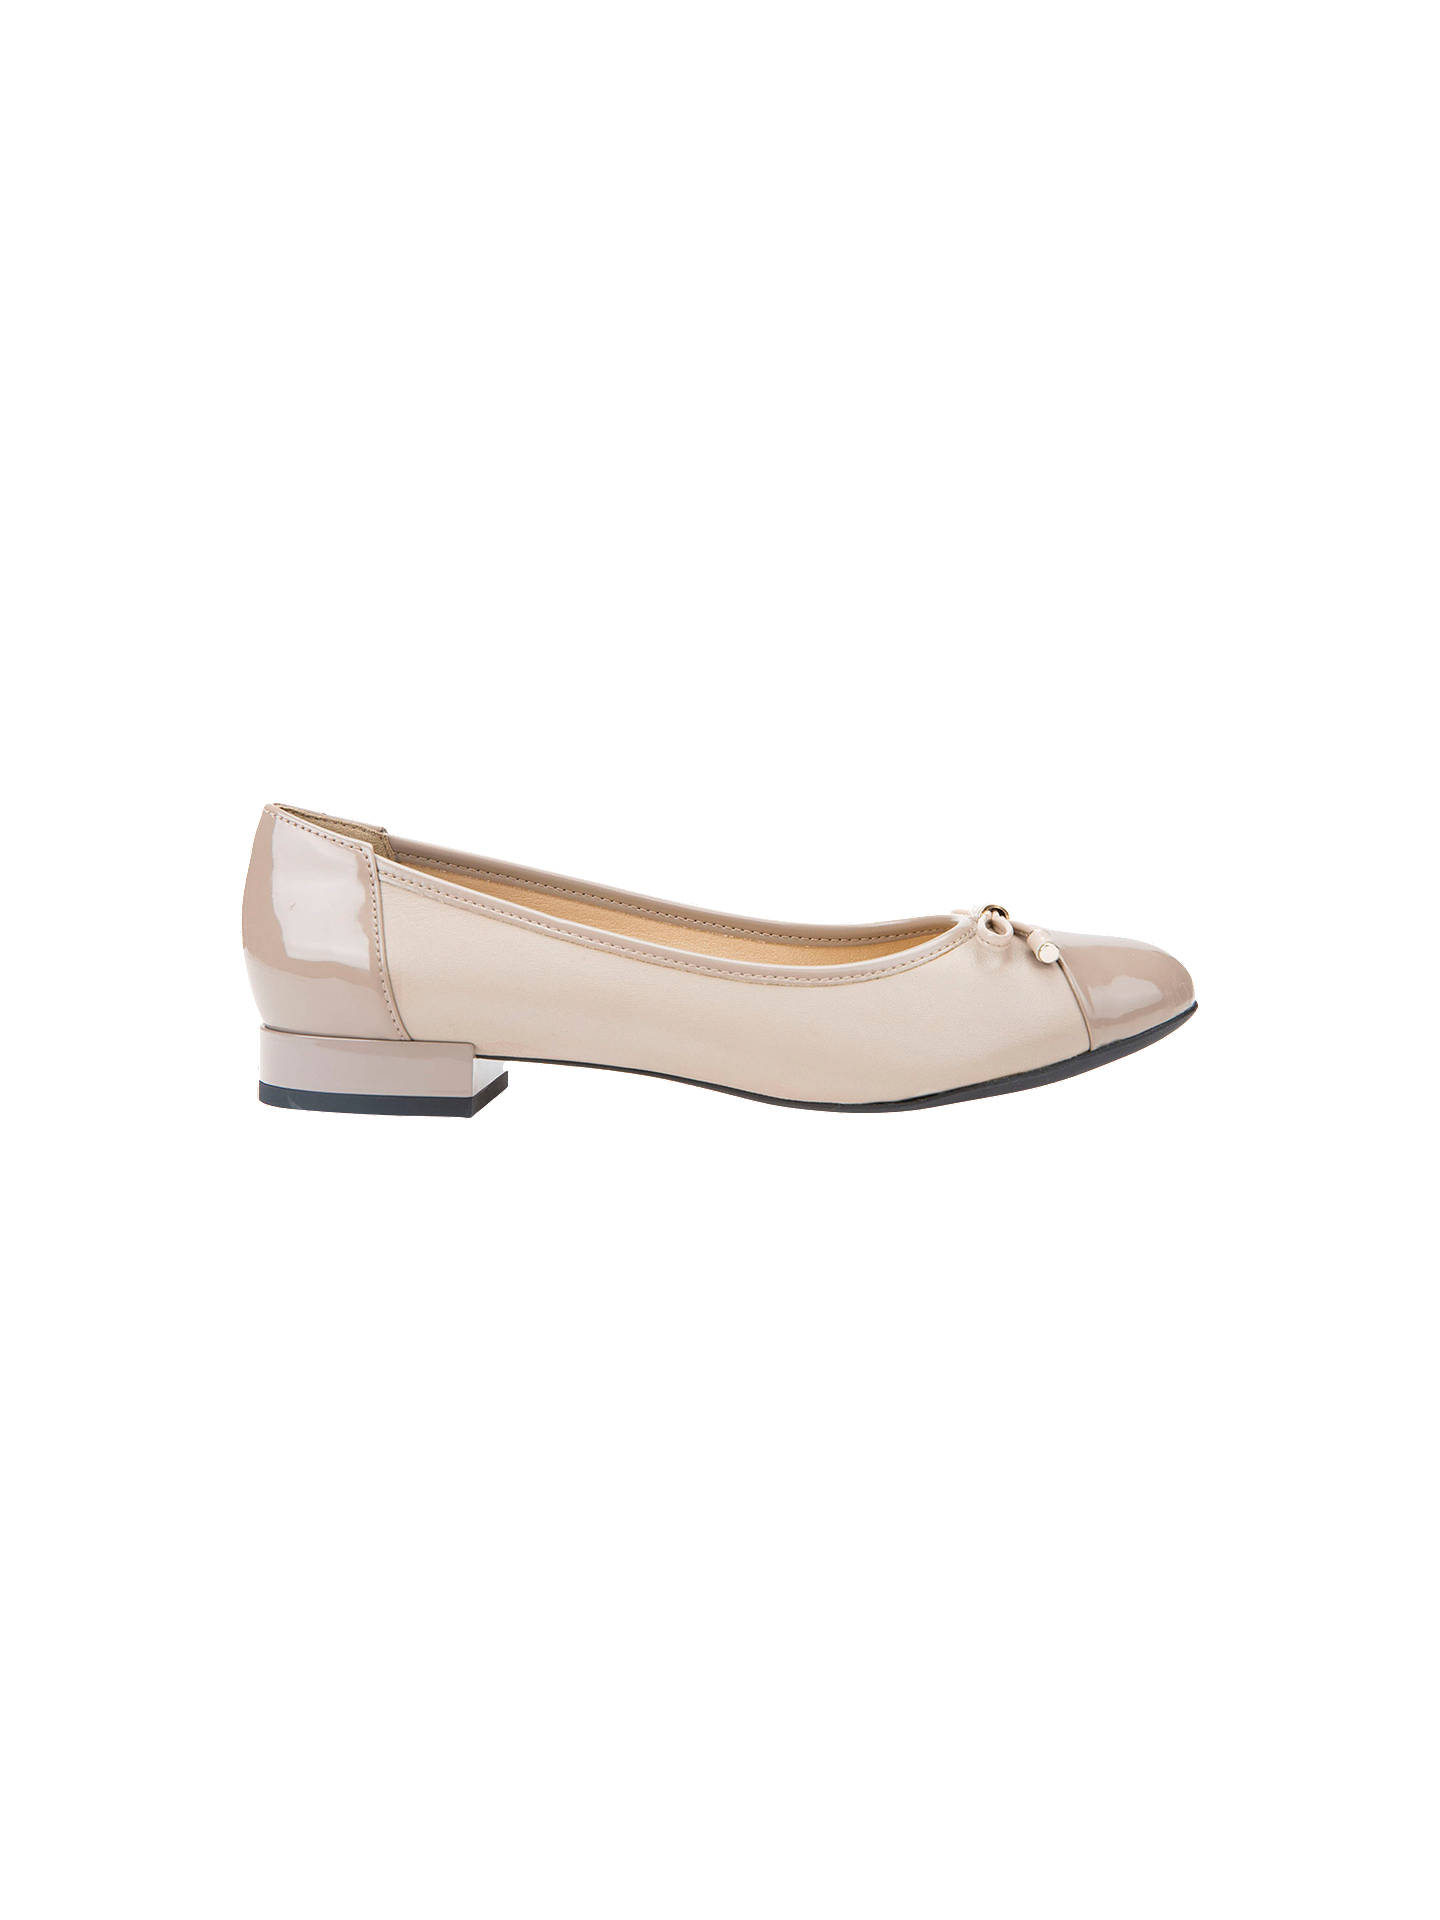 Geox Women's Wistrey Breathable Ballet Pumps at John Lewis